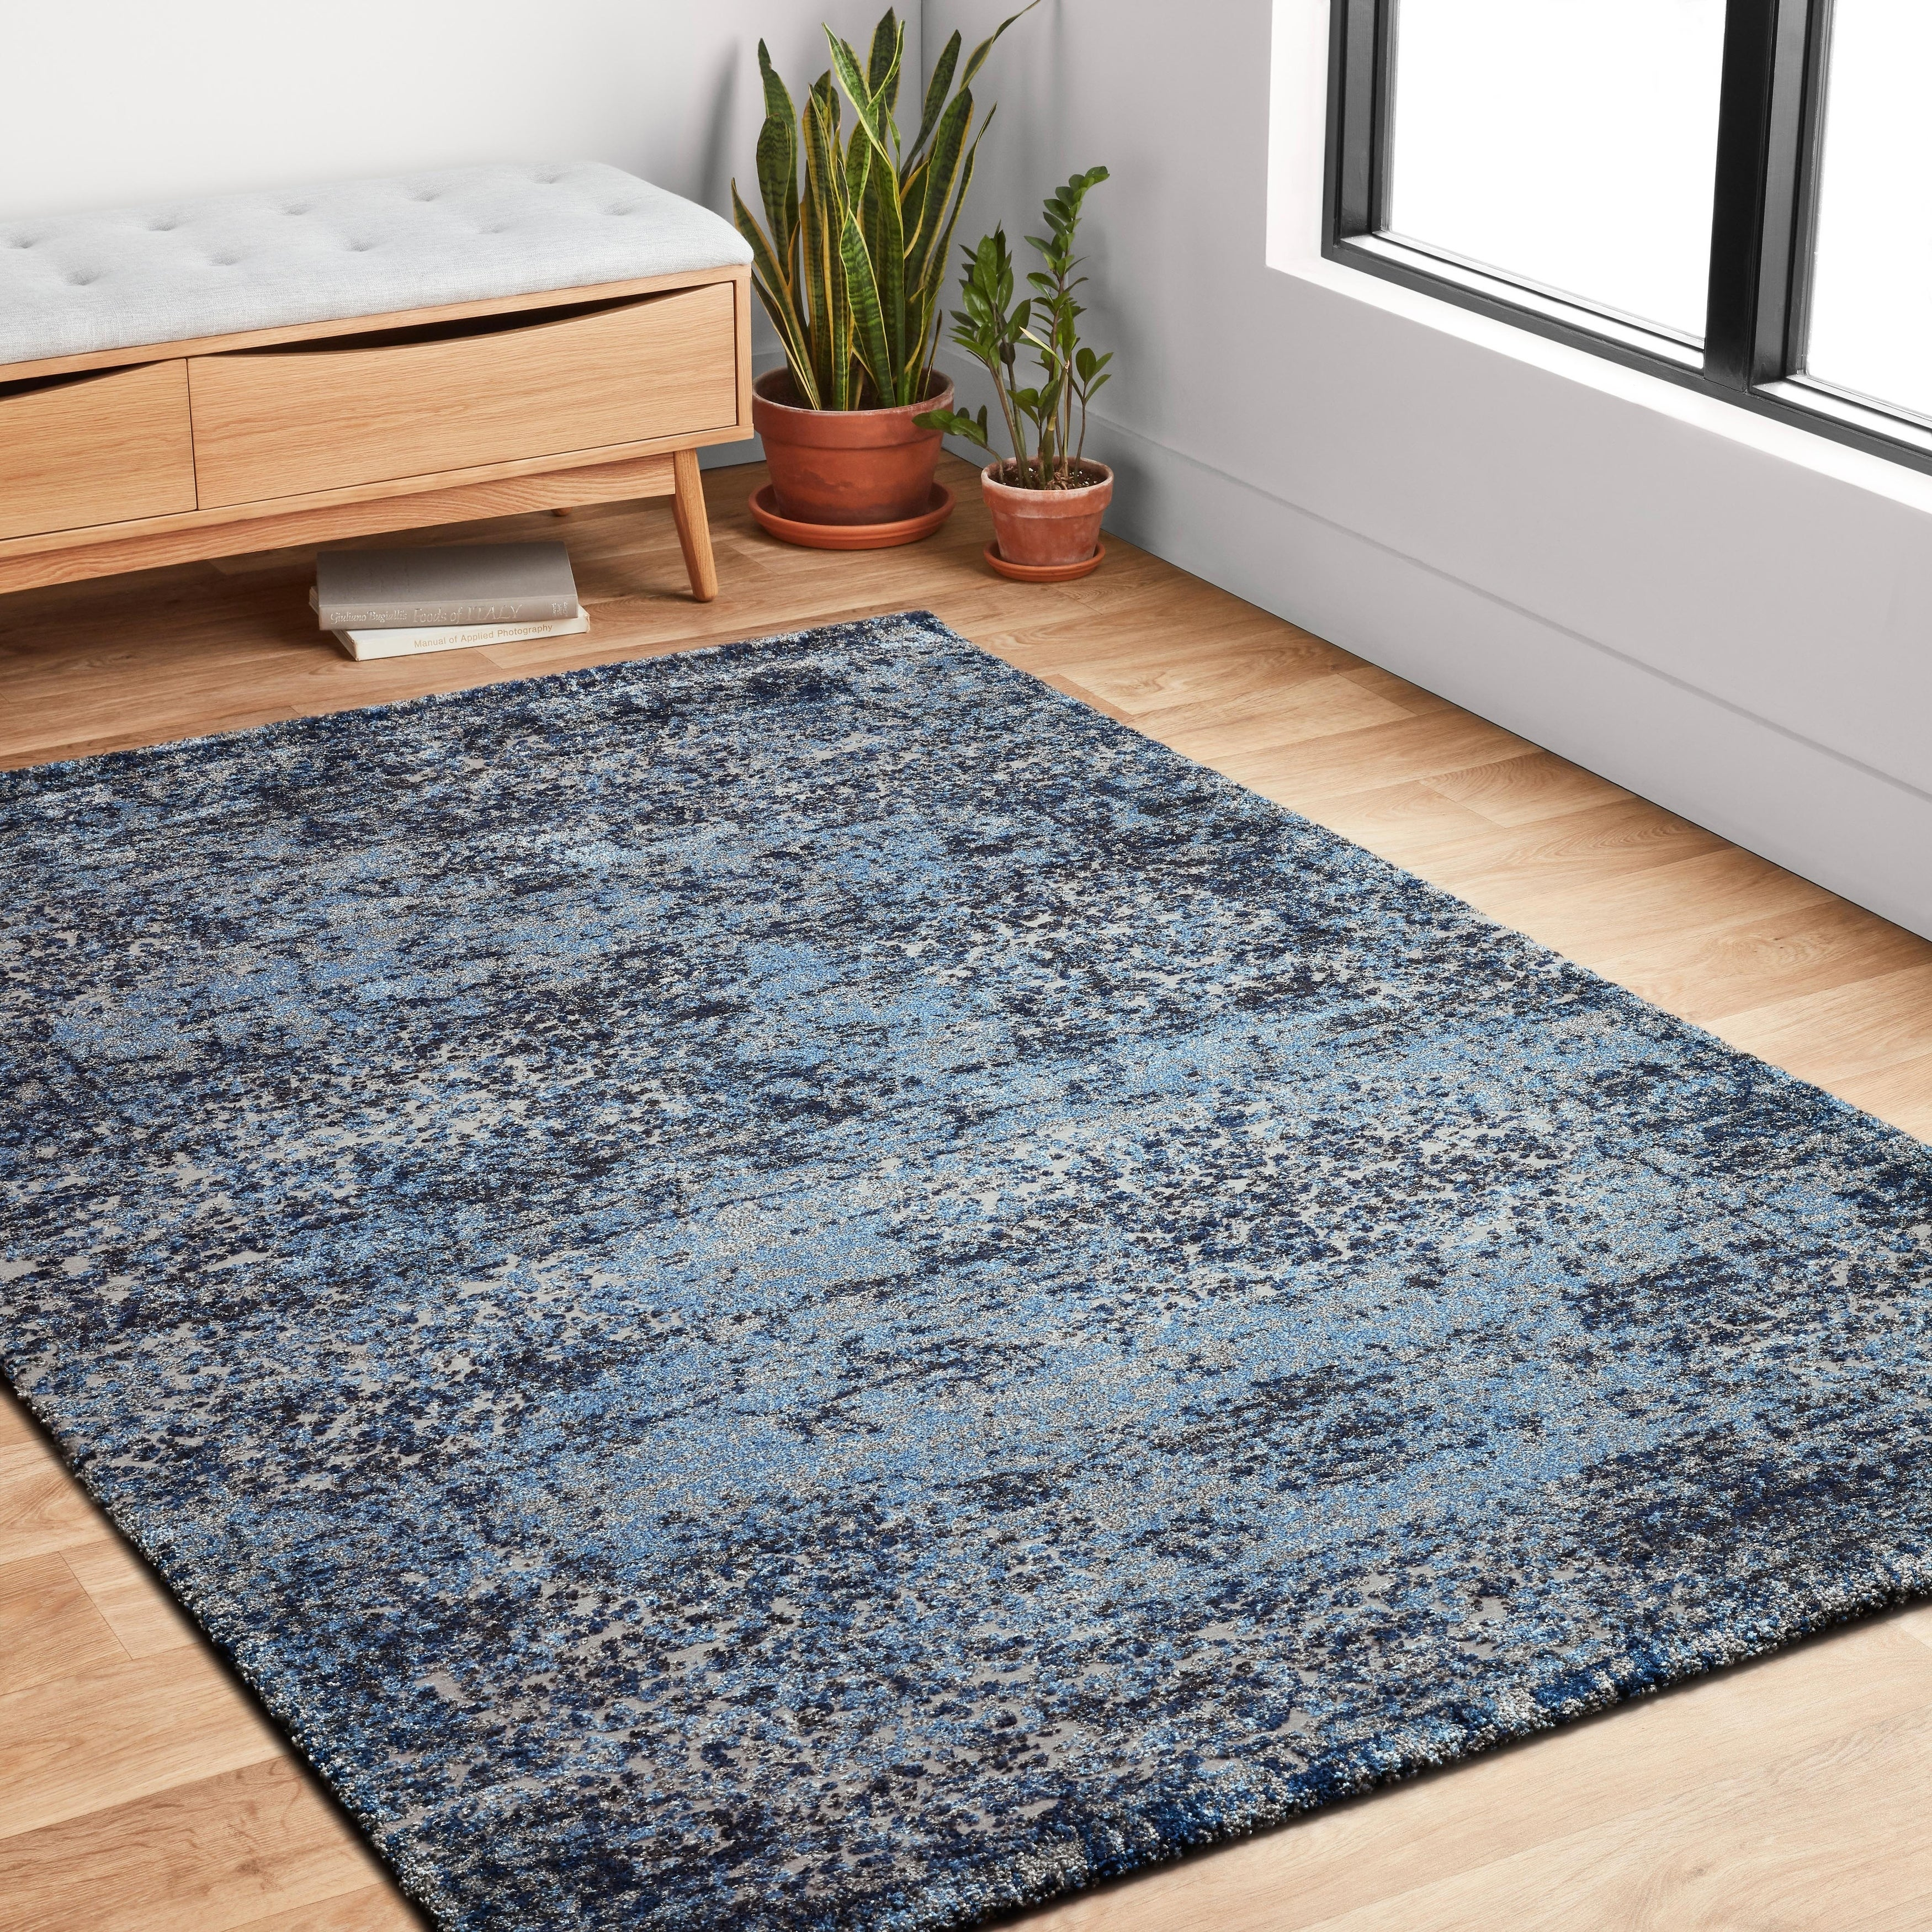 Abstract Modern Distressed Area Rug